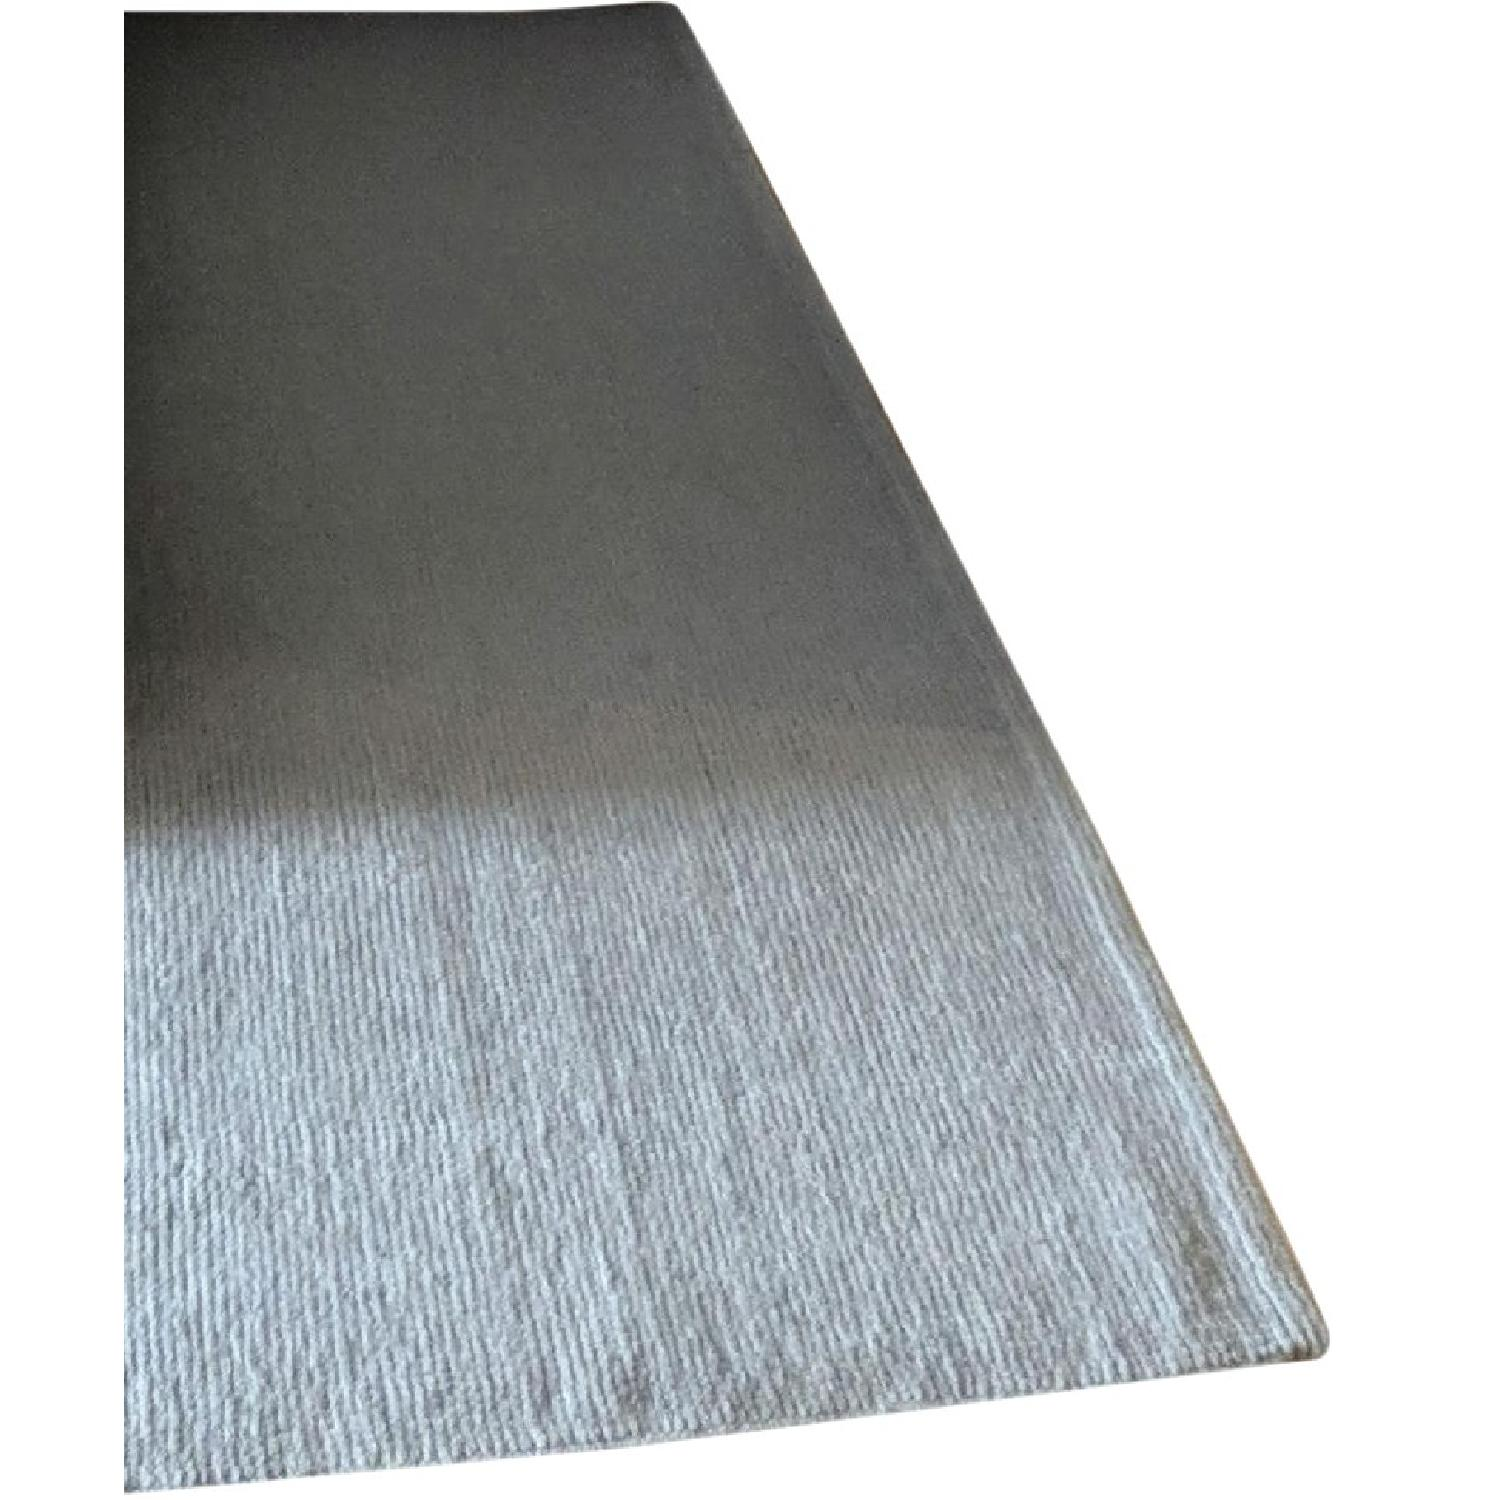 ABC Carpet and Home Grey Wool Area Rug